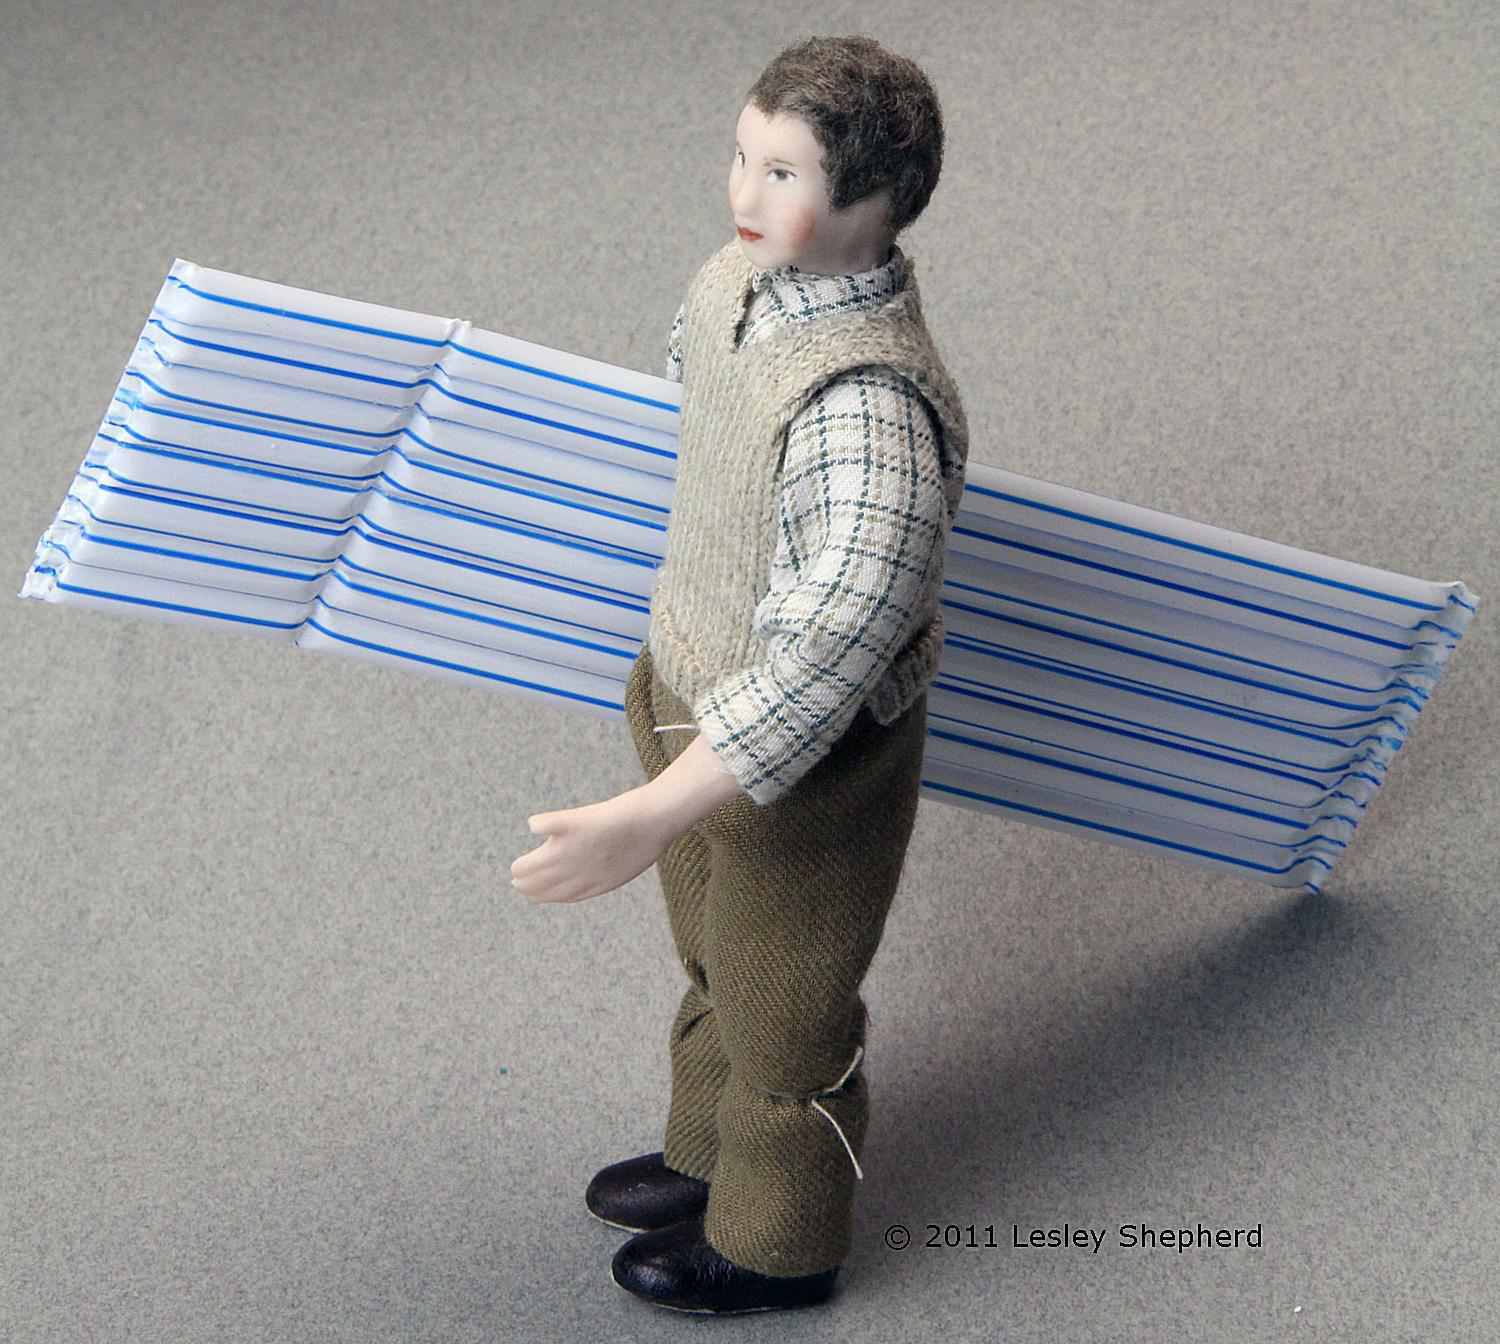 Dollhouse doll with a 1:12 scale miniature air mattress made from plastic drinking straws.